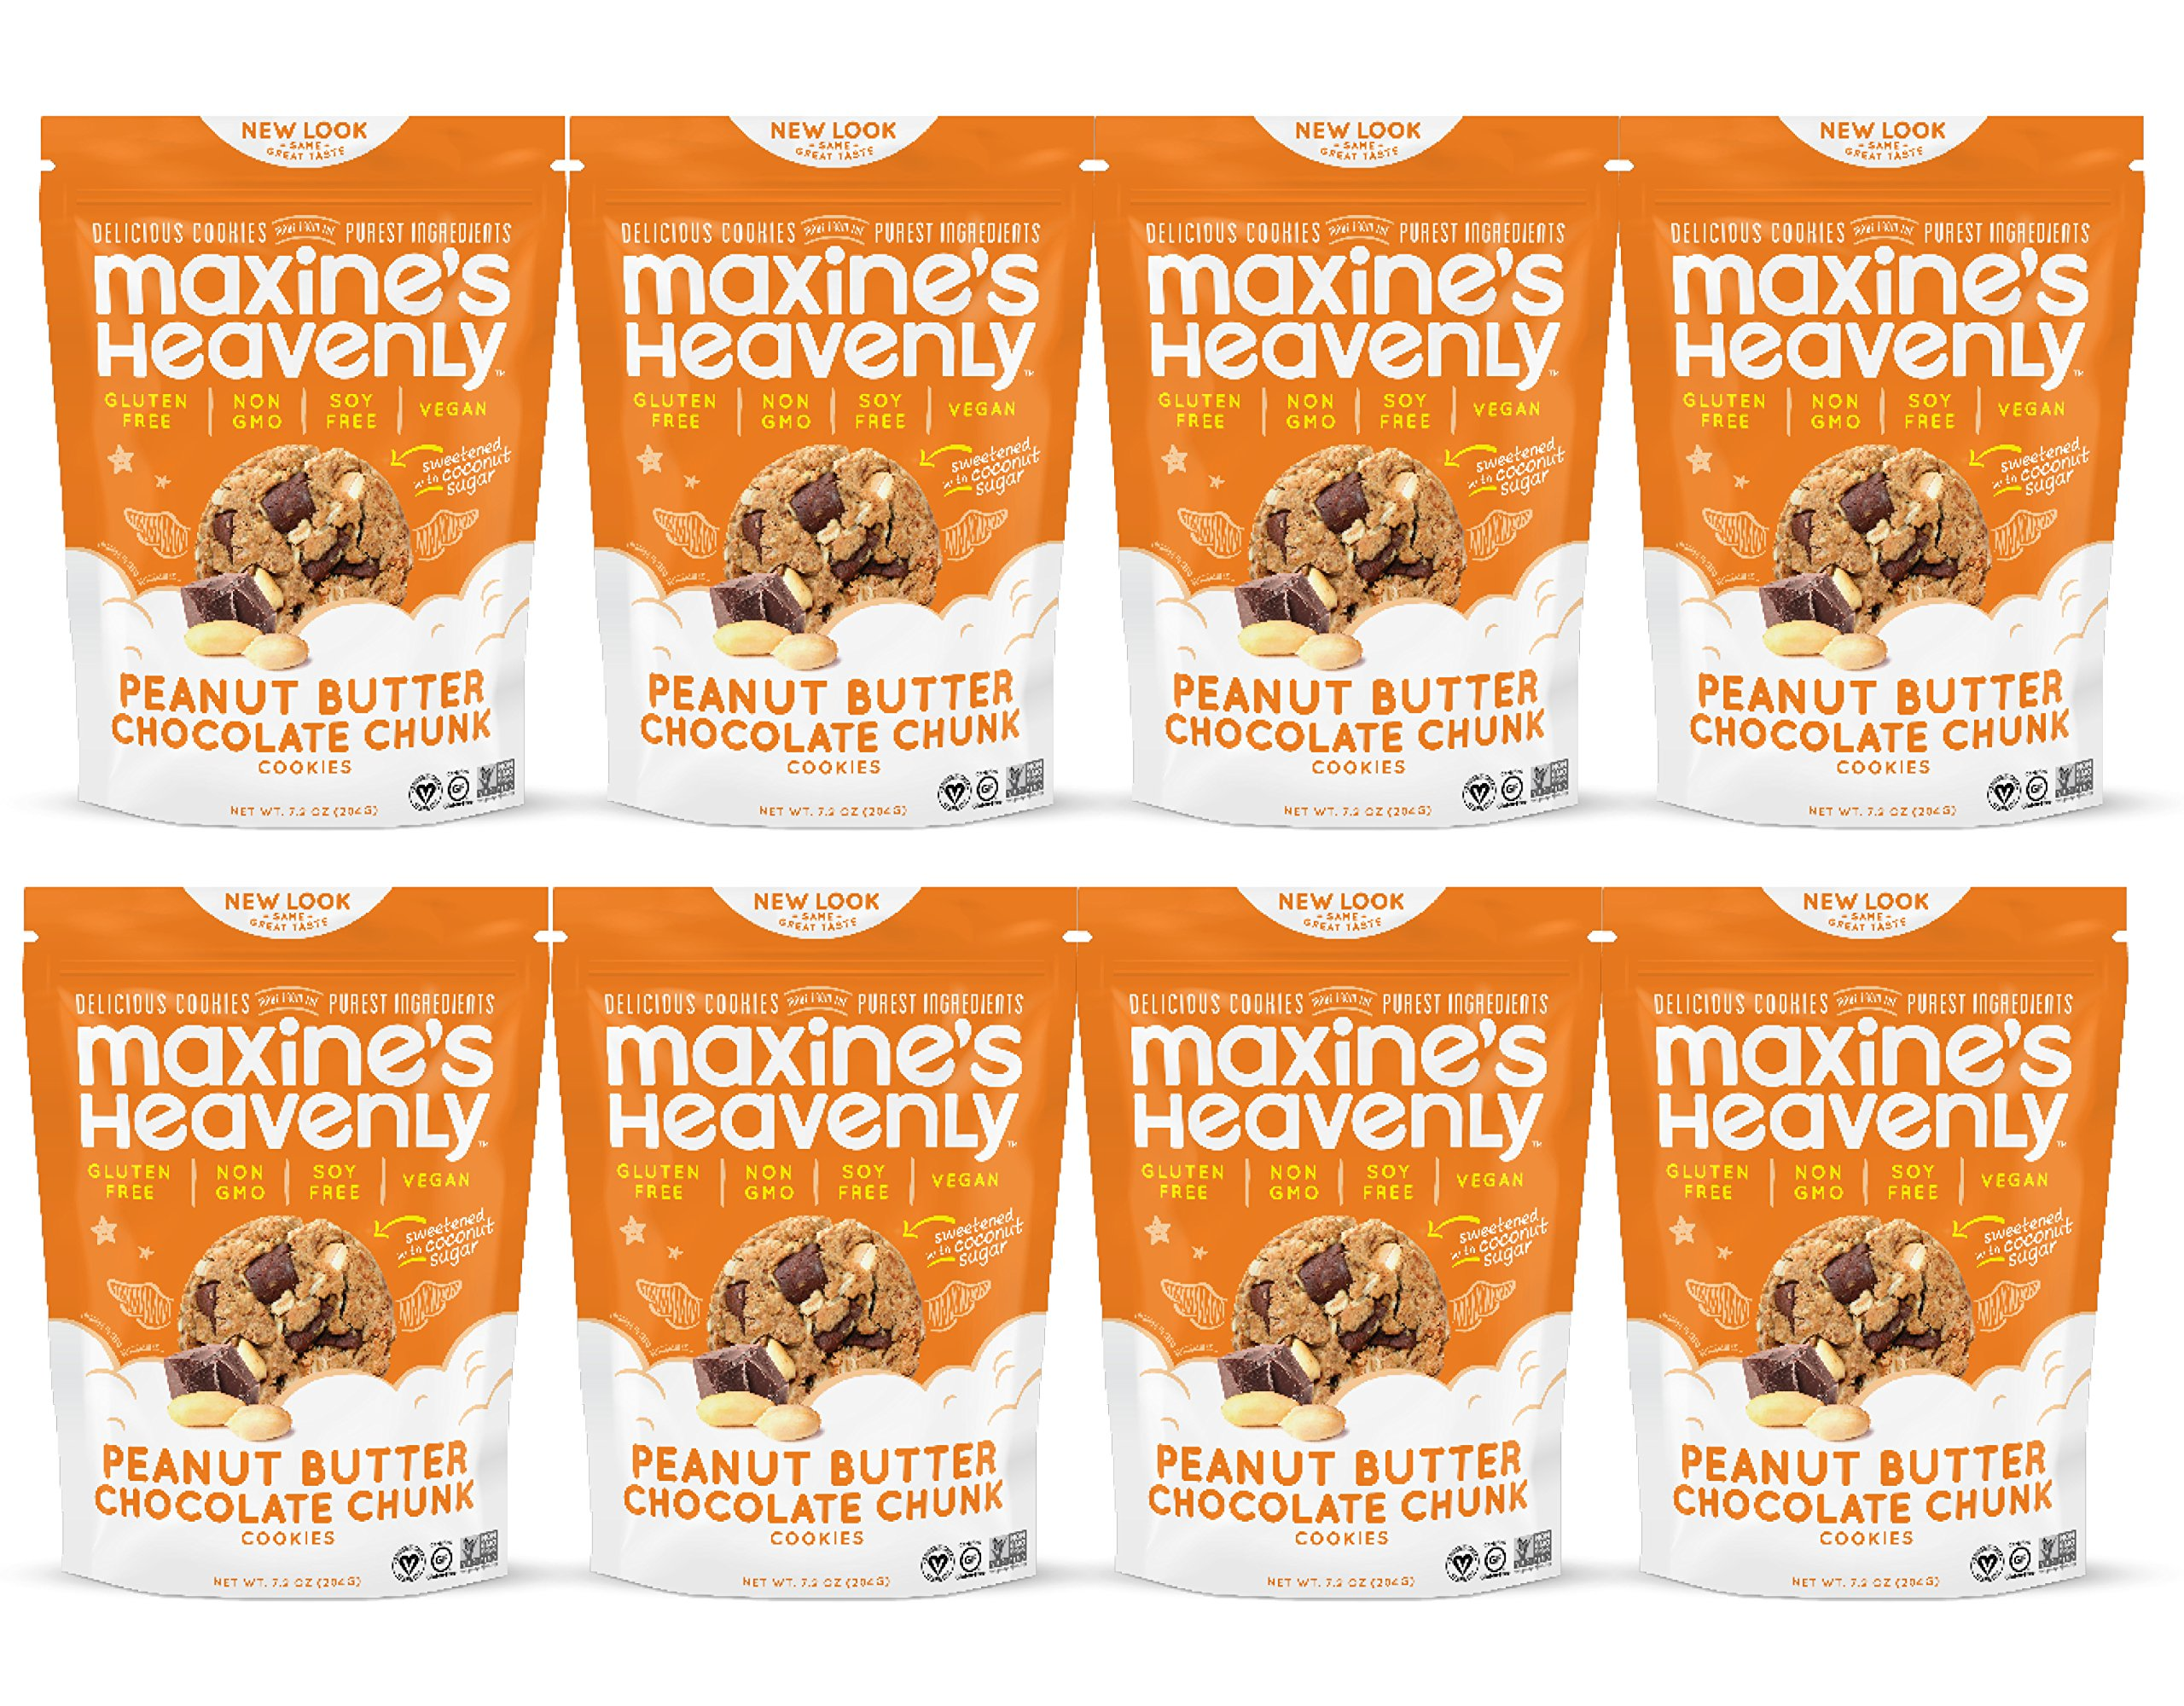 Maxine's Heavenly - Vegan, Gluten Free, Soy Free, Non-GMO - Peanut Butter Chocolate Chunk Cookies - 7.2 ounce bags (8 pack) (8) by Maxine's Heavenly